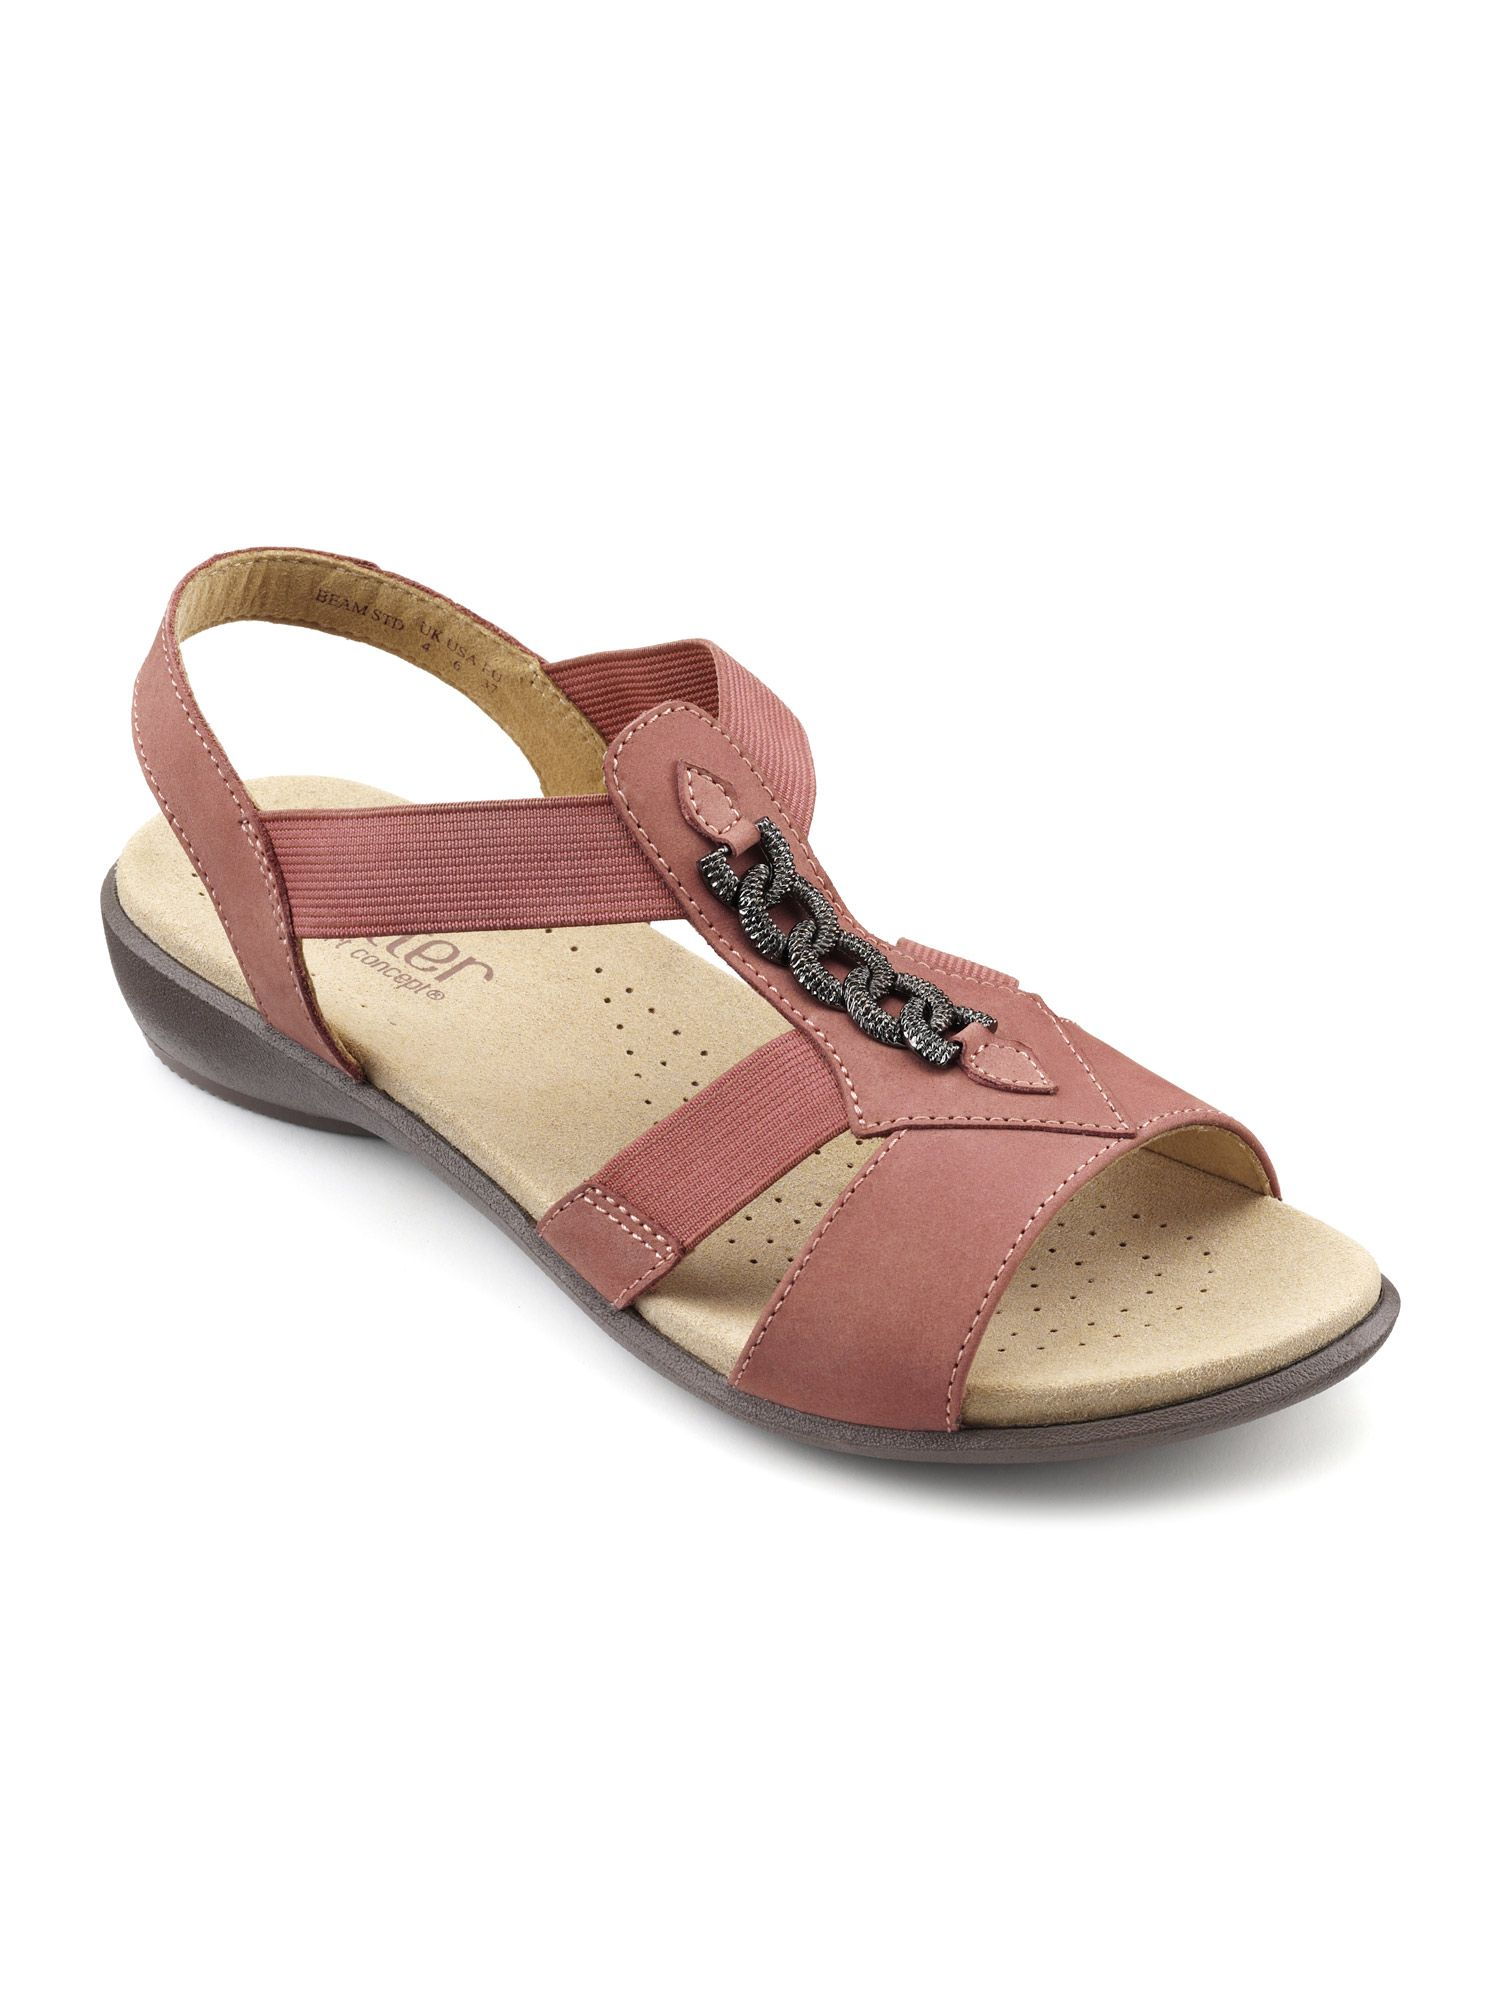 Hotter Beam Sandals, Salmon